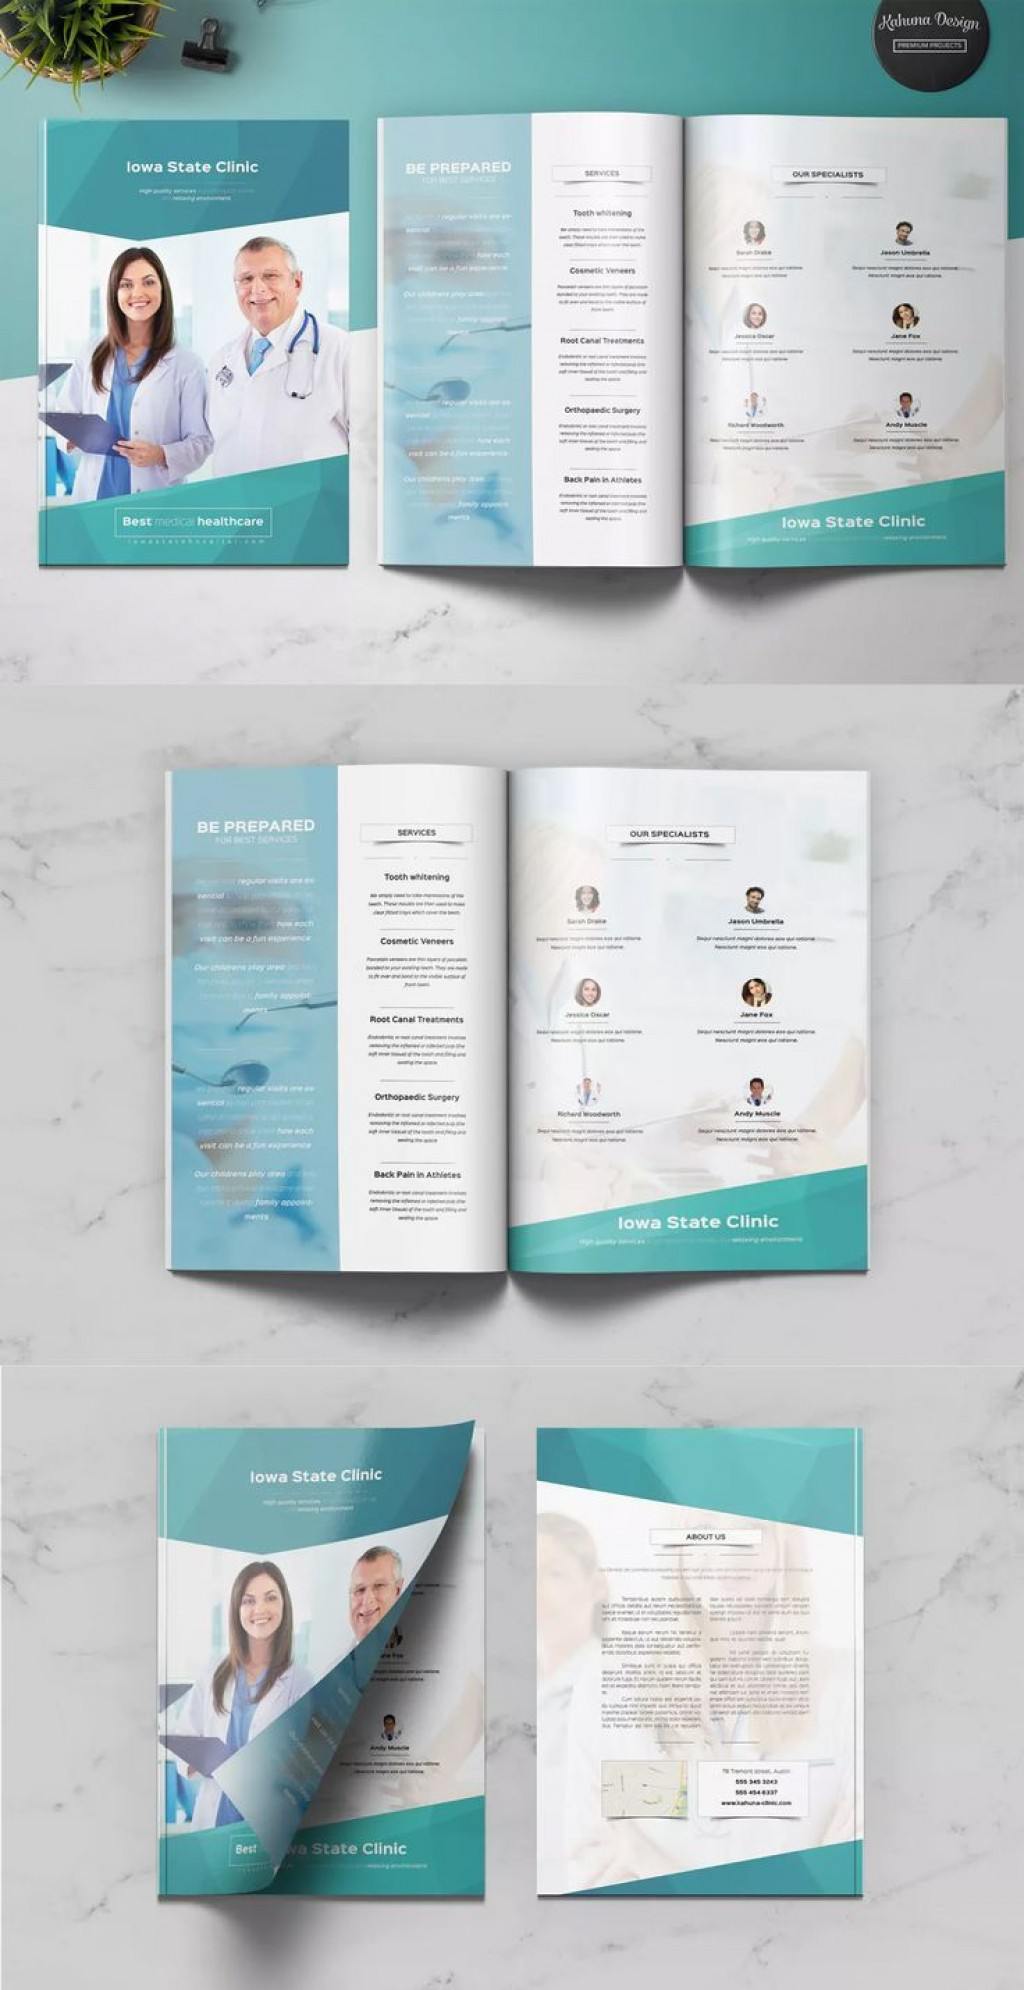 001 Unbelievable Word Tri Fold Brochure Template Inspiration  2010 Microsoft M OfficeLarge